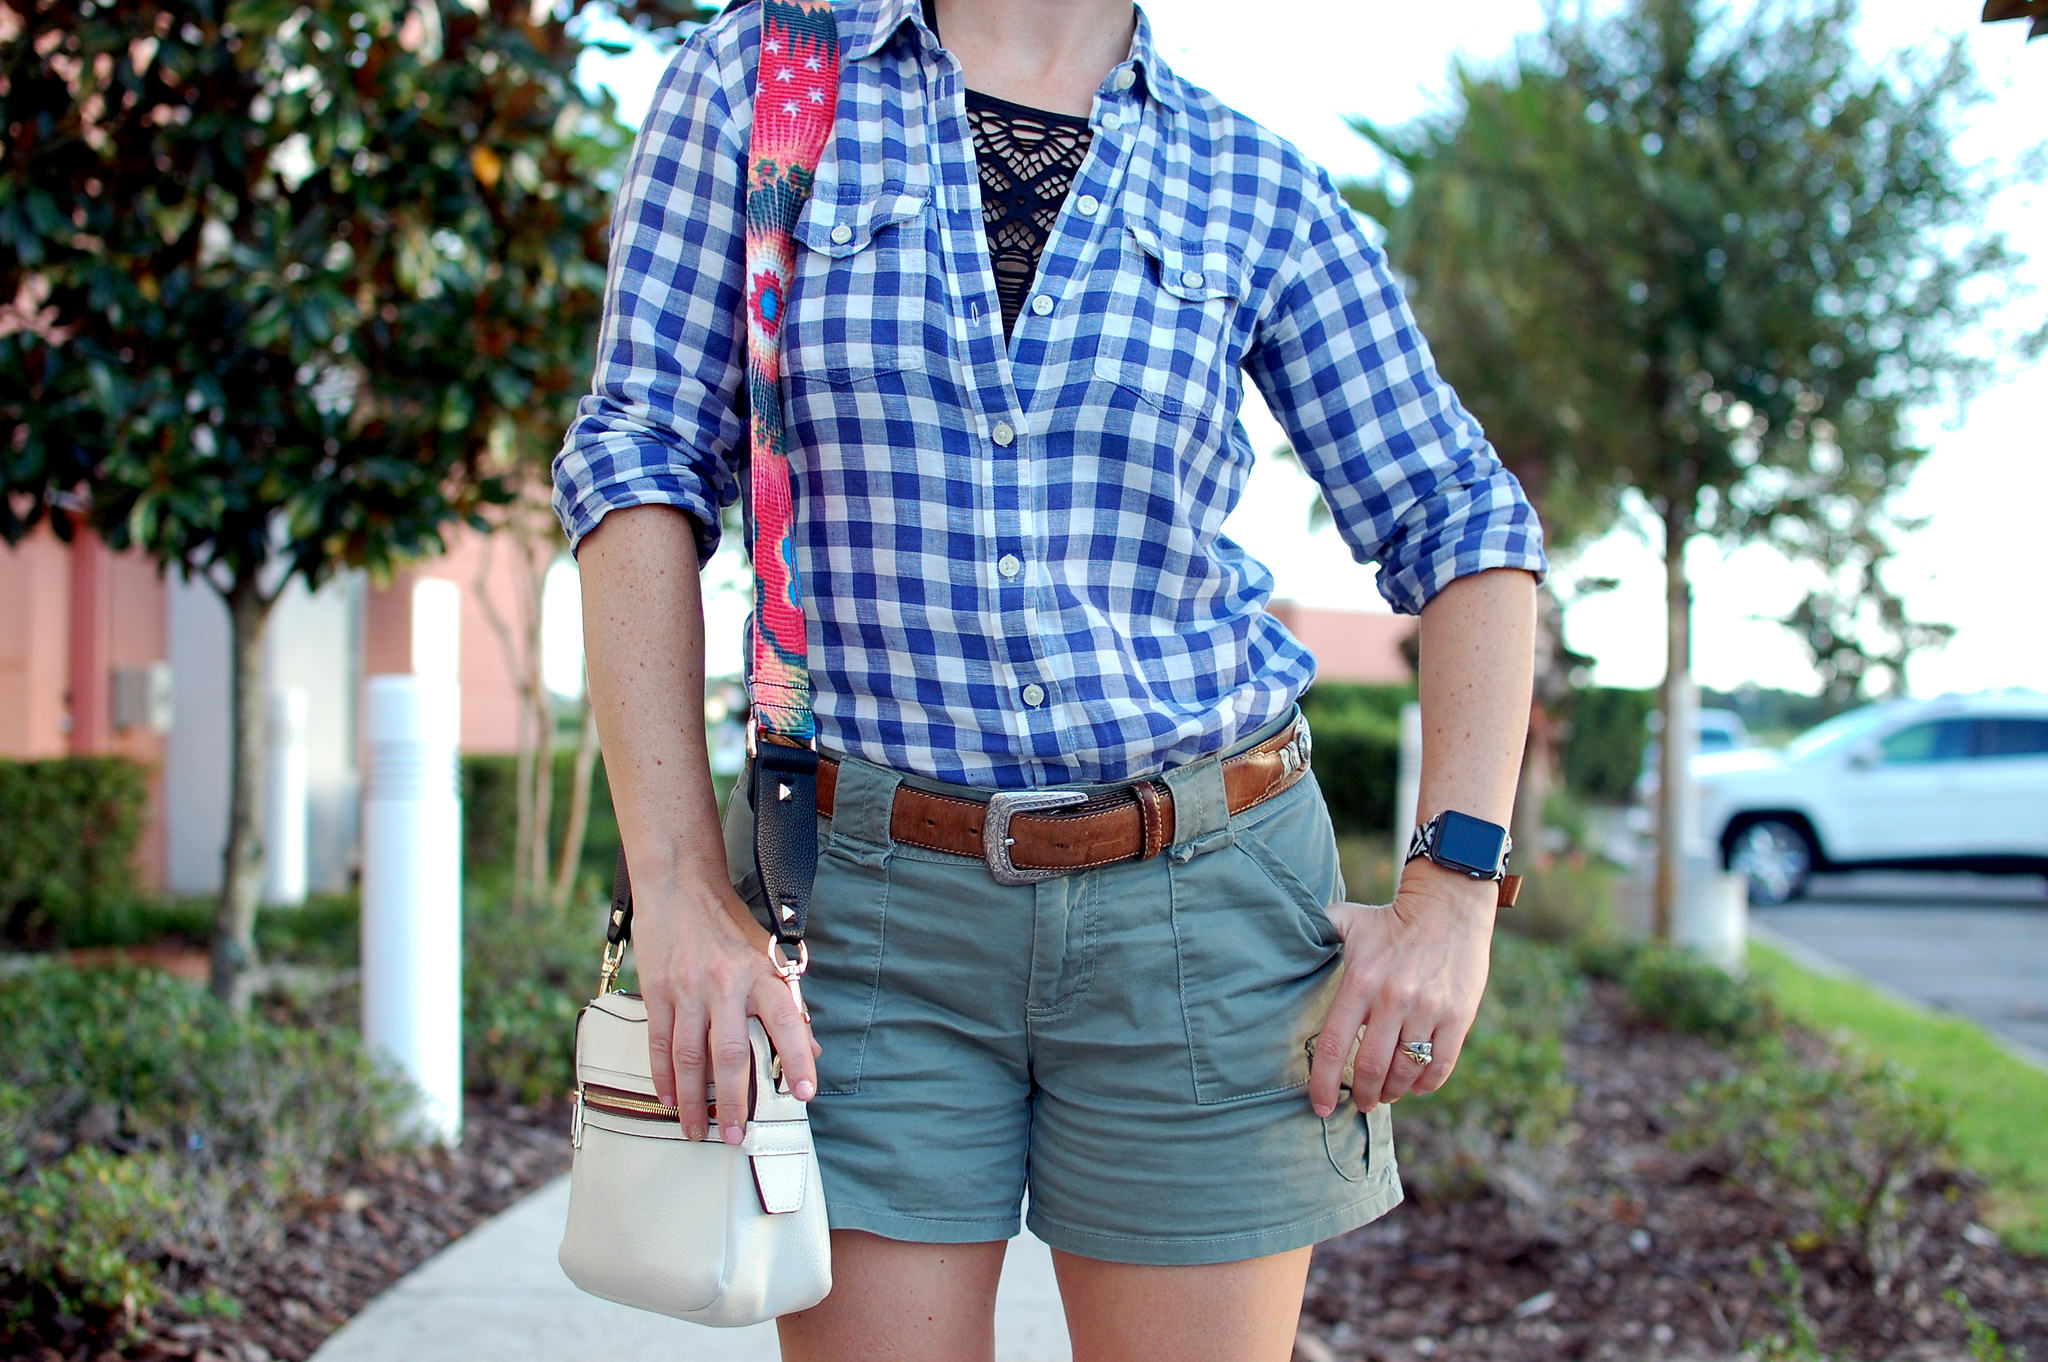 gingham shirt olive cargo shorts travel orlando daily outfit blog ootd whatiwore2day